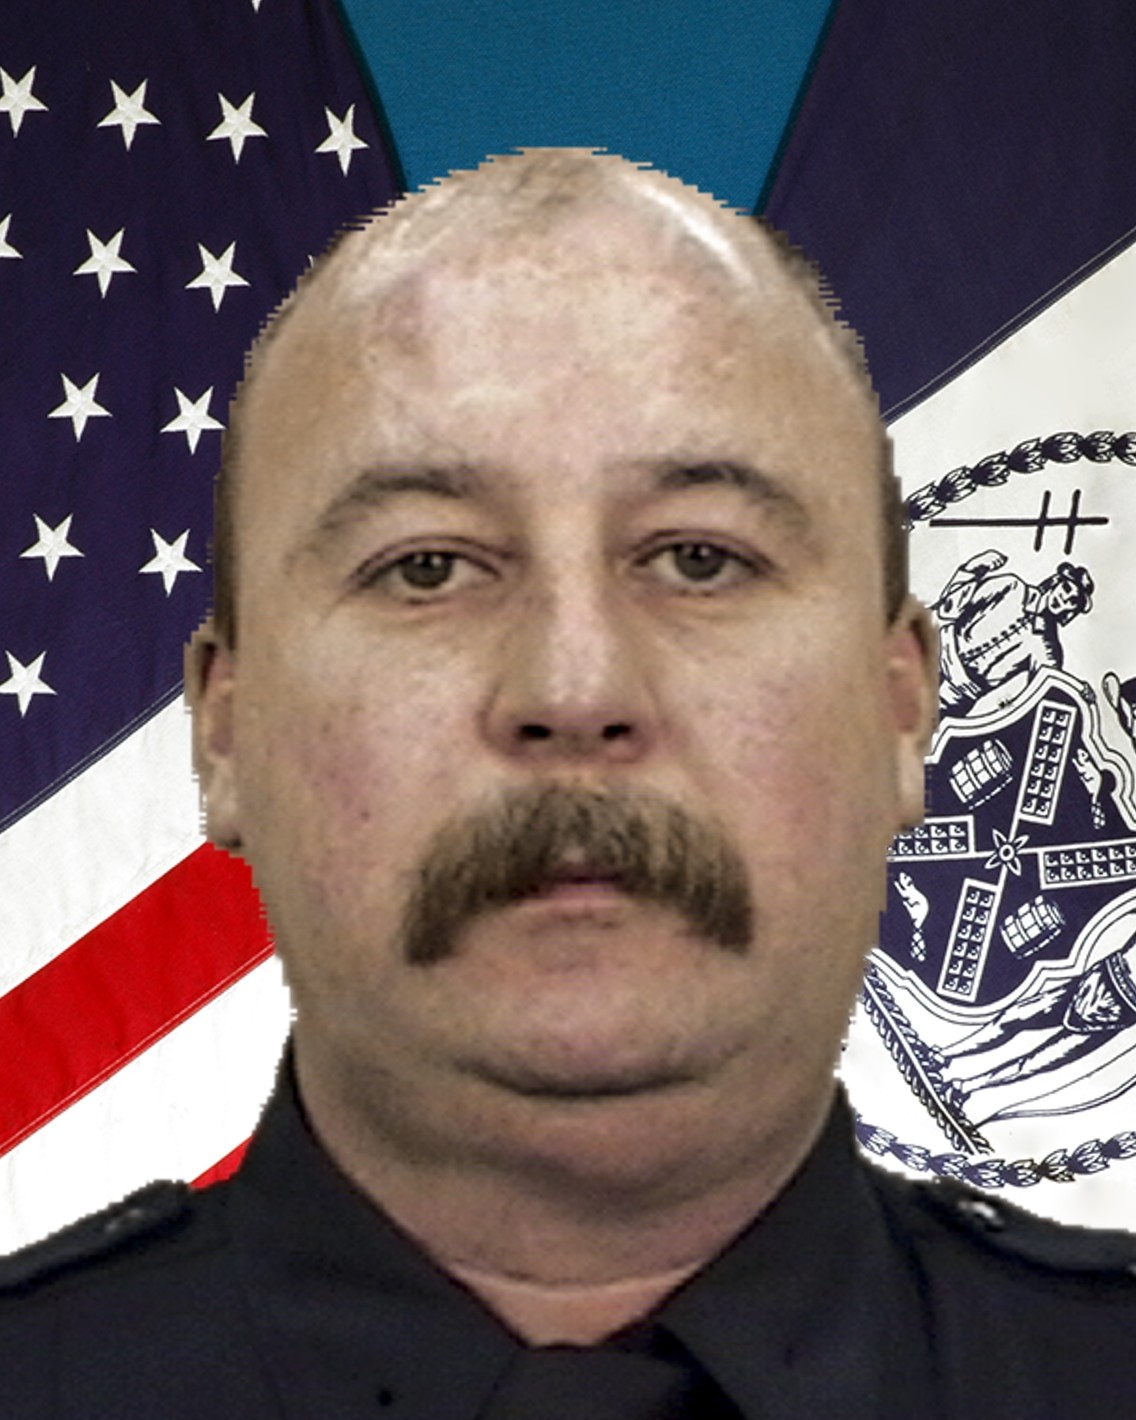 Police Officer Matthew J. Gay | New York City Police Department, New York